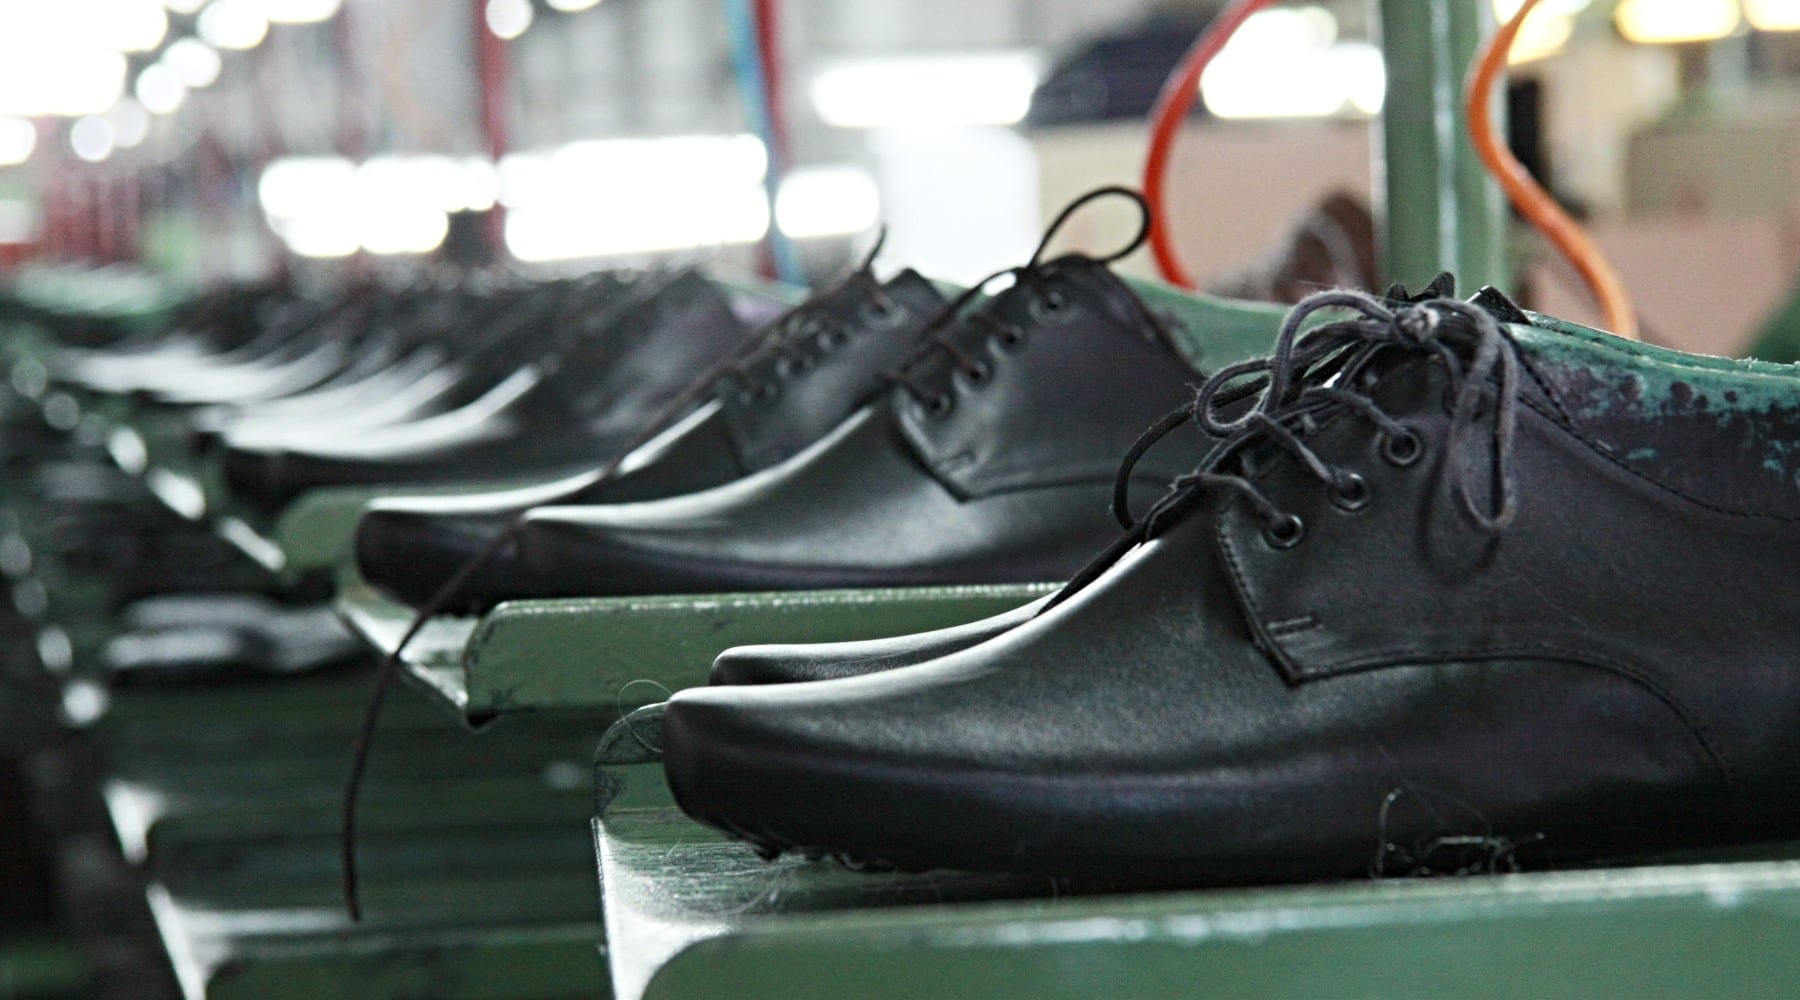 Garment, Footwear Supply Chains Becoming More Transparent